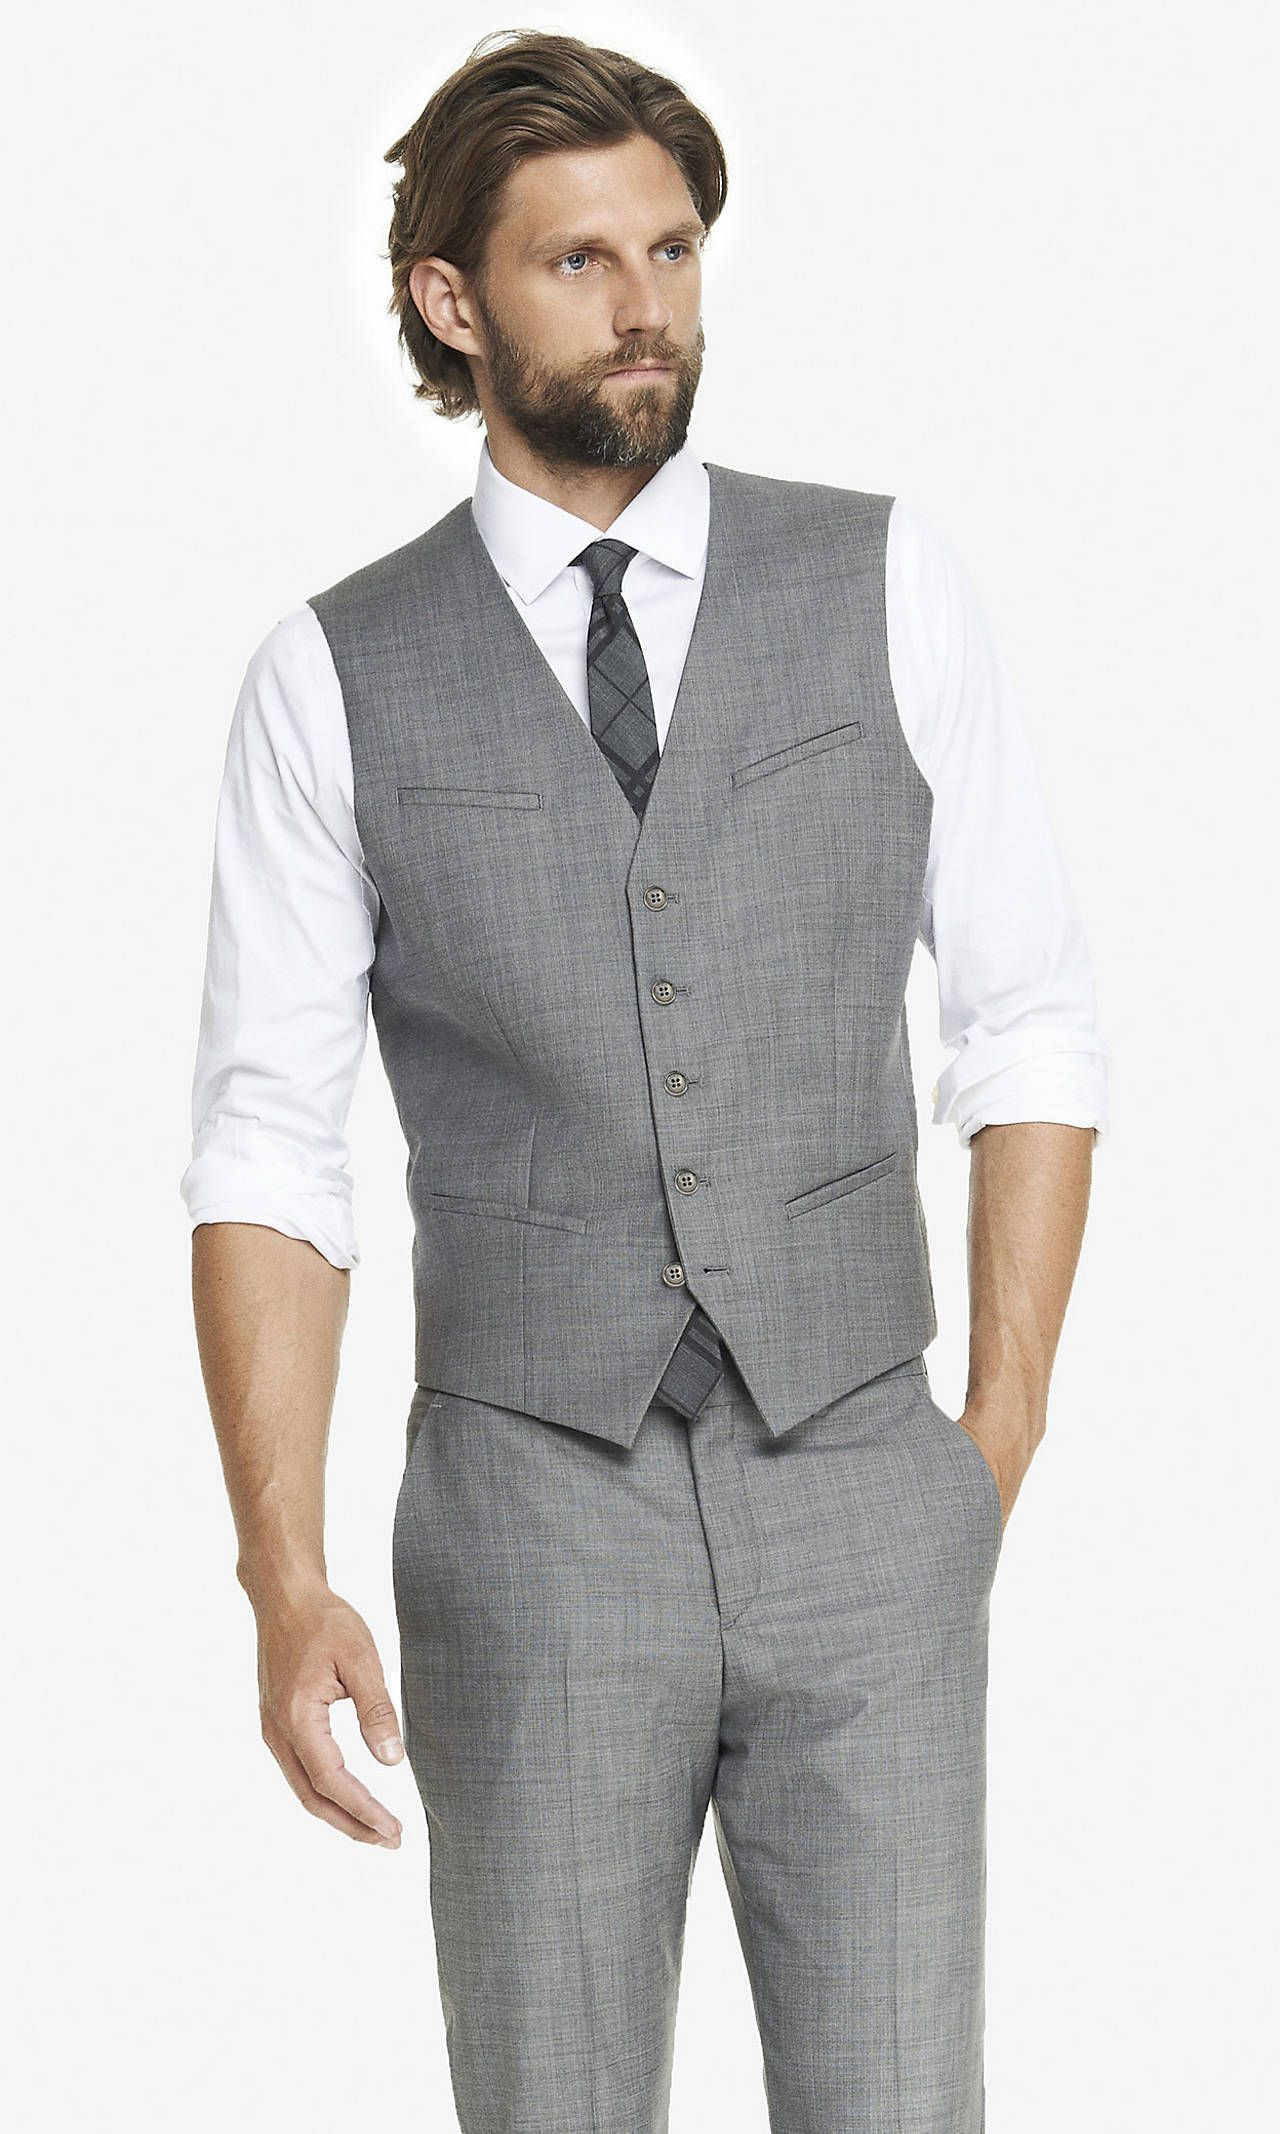 Micro Twill Suit Vest from EXPRESS | Hitched in 2018 | Pinterest ...